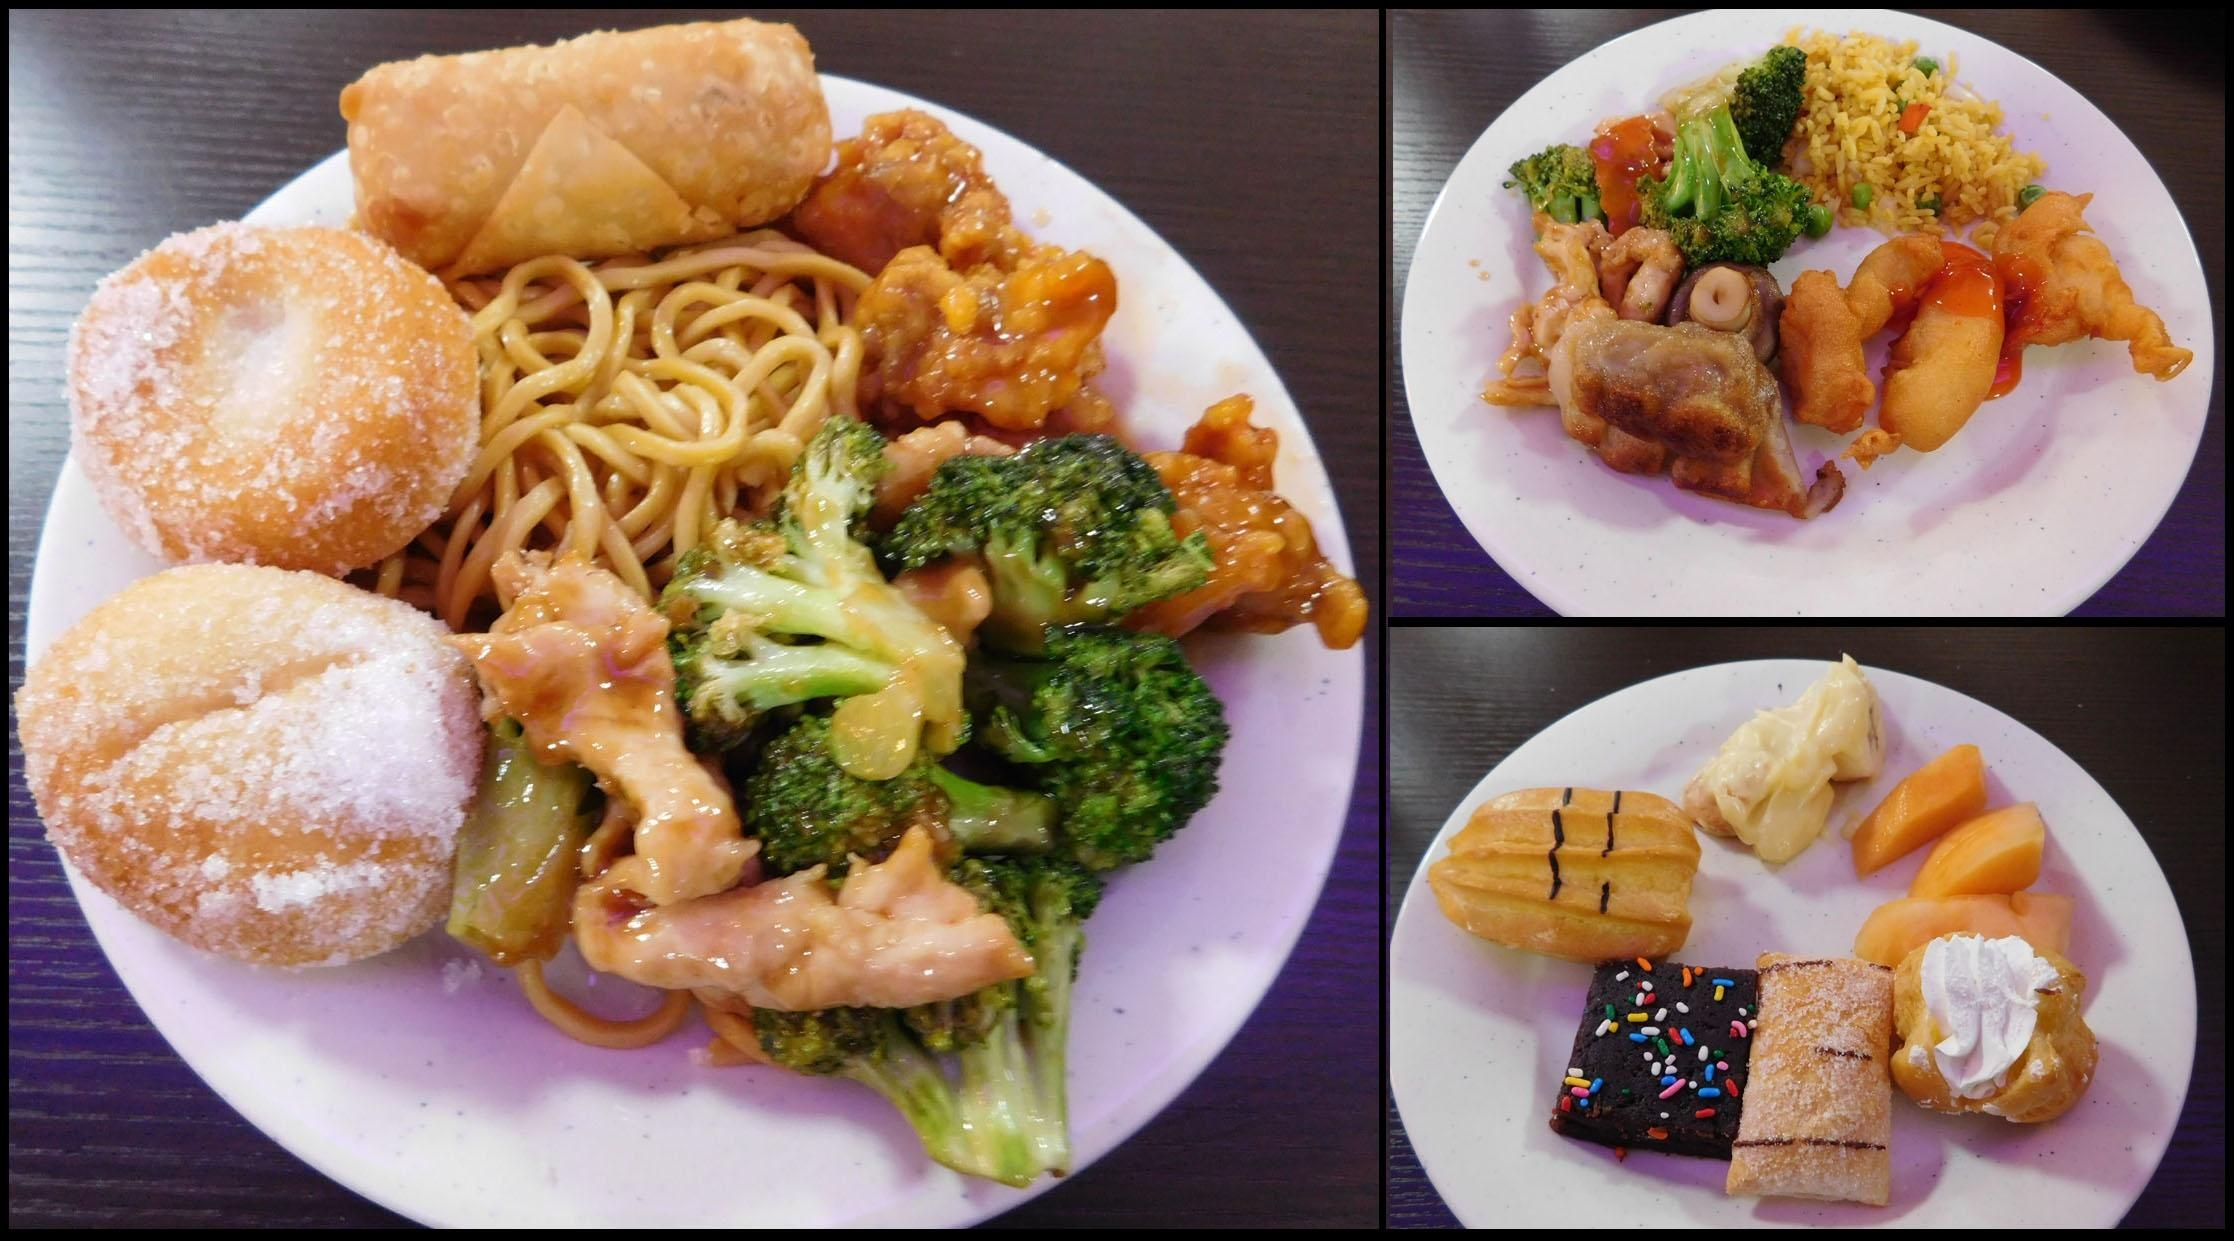 That S Lunch Borunda Asian Buffet Offers Tasty Options With Images Tasty Lunch Eat